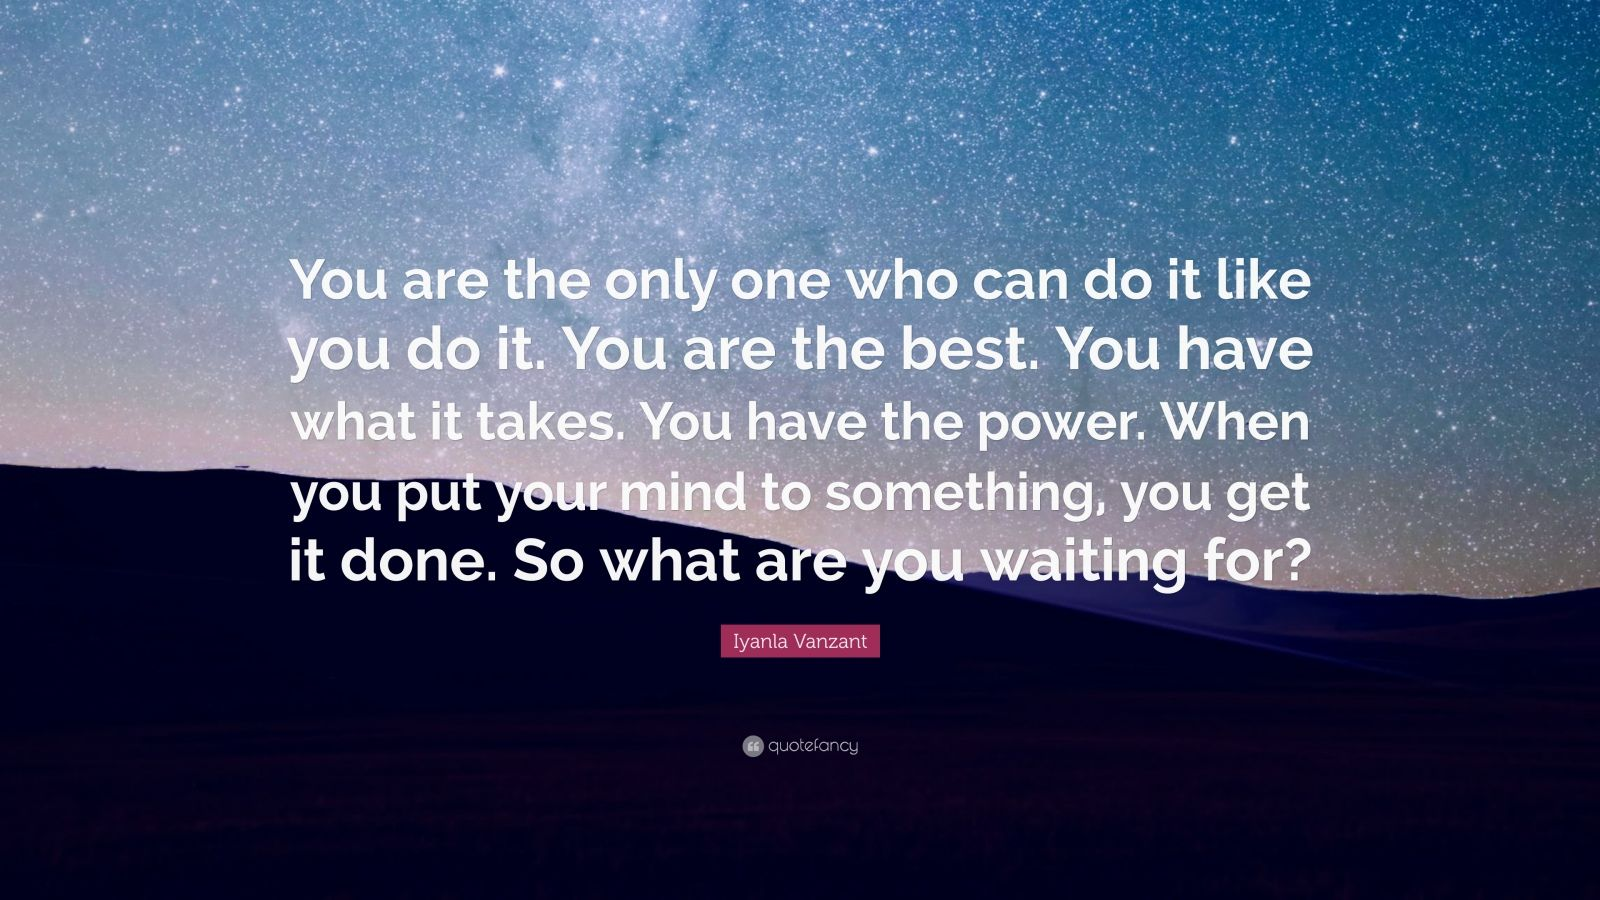 """Iyanla Vanzant Quote: """"You are the only one who can do it like you do it. You are the best. You have what it takes. You have the power. When you put your mind to something, you get it done. So what are you waiting for?"""""""